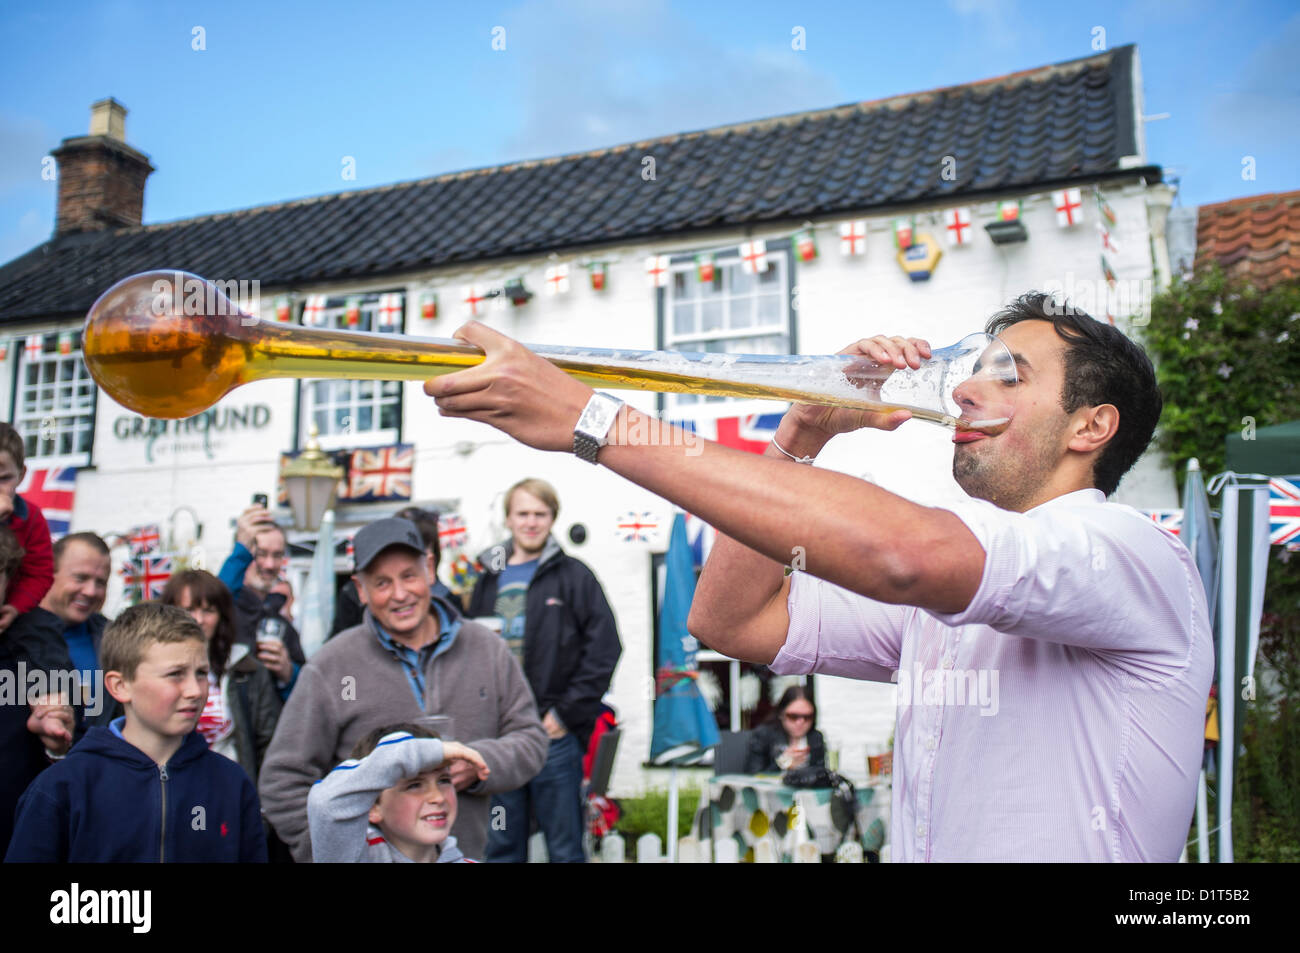 Young Man Drinking Yard of Ale at Village Pub During Queen's Diamond Jubille Celebrations - Stock Image